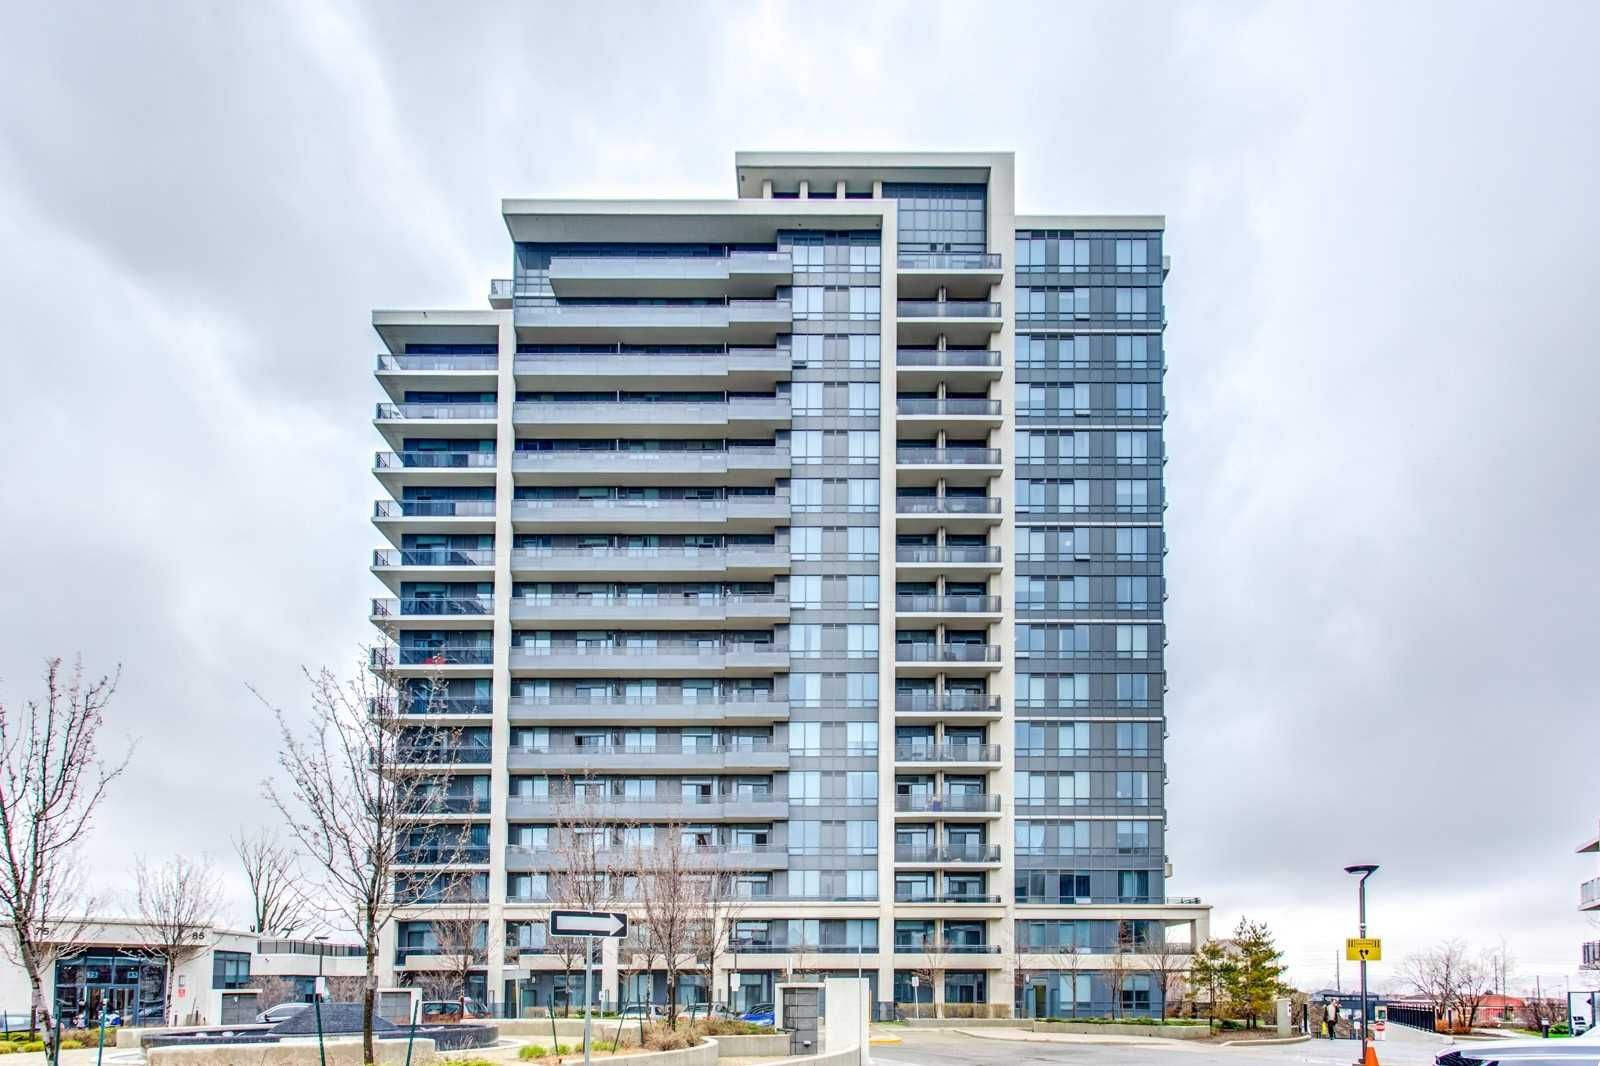 Main Photo: 85 North Park Rd 814 in Vaughan: Condo for sale : MLS®# N4431037